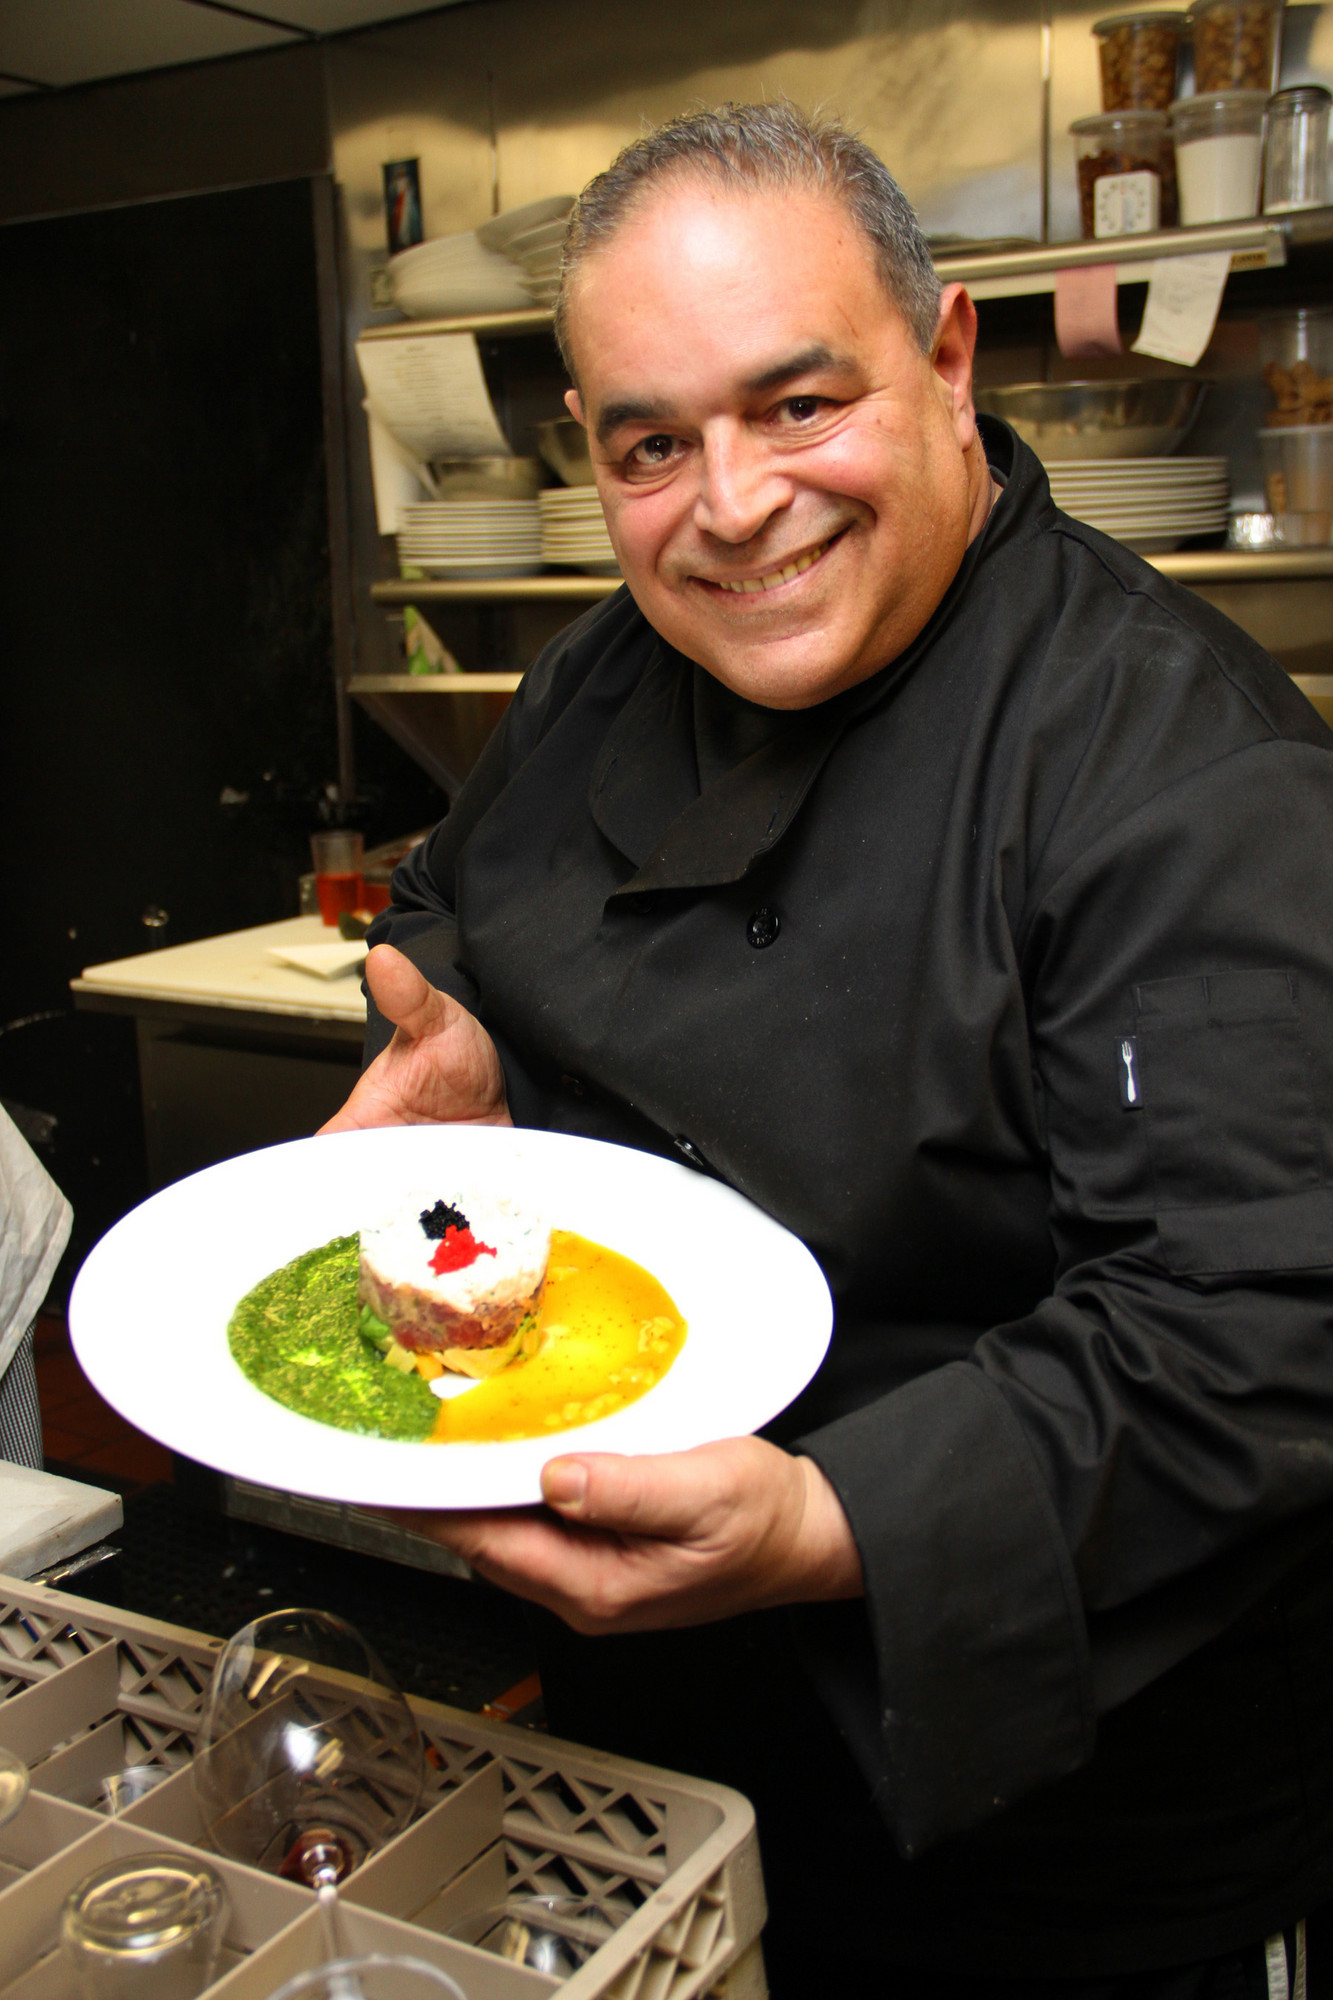 Joe Gannascoli with one of his delicious dishes.